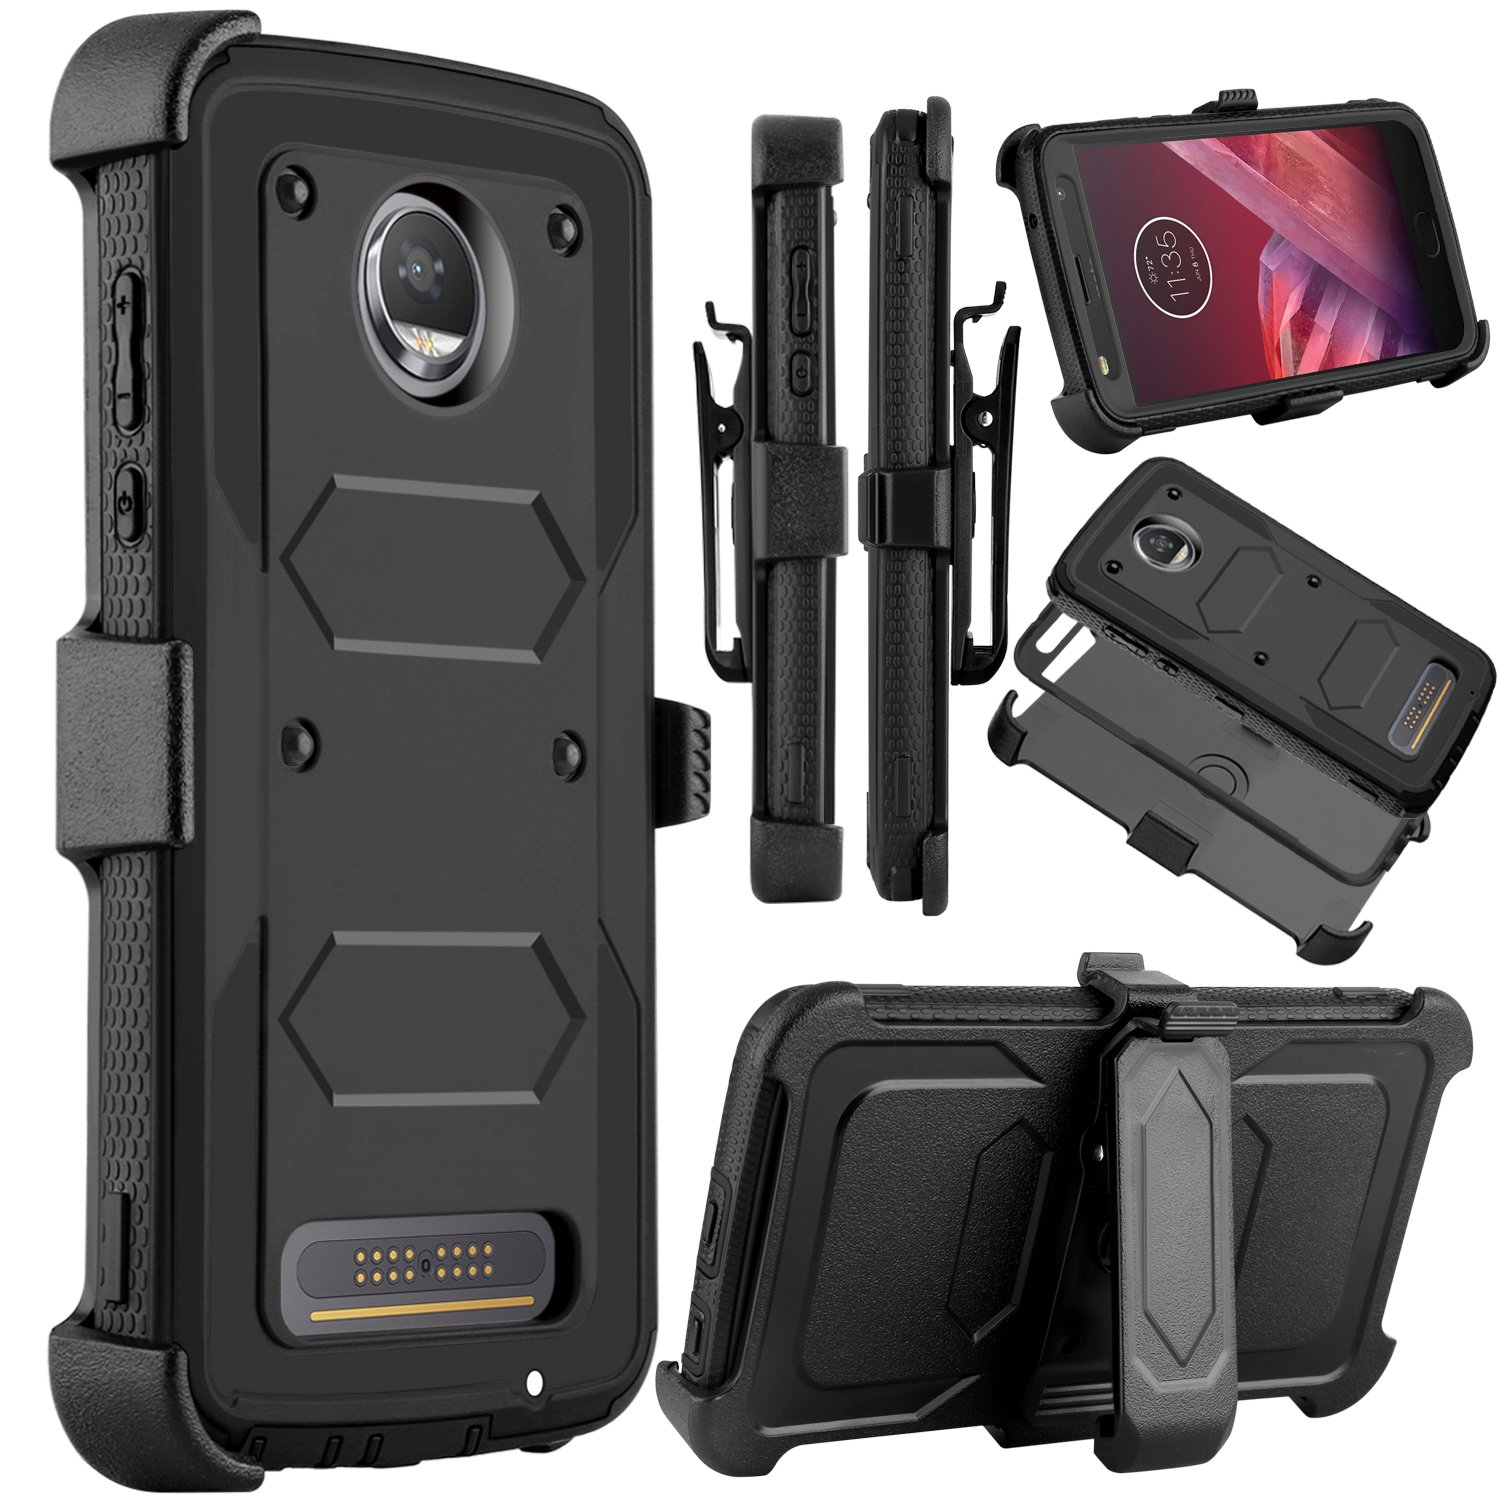 Venoro Moto Z2 Force Case, Moto Z2 Play Case, Heavy Duty Shockproof Full Body Protection Rugged Hybrid Case Cover with Swivel Belt Clip and Kickstand for Motorola Z Force 2017 (Black)